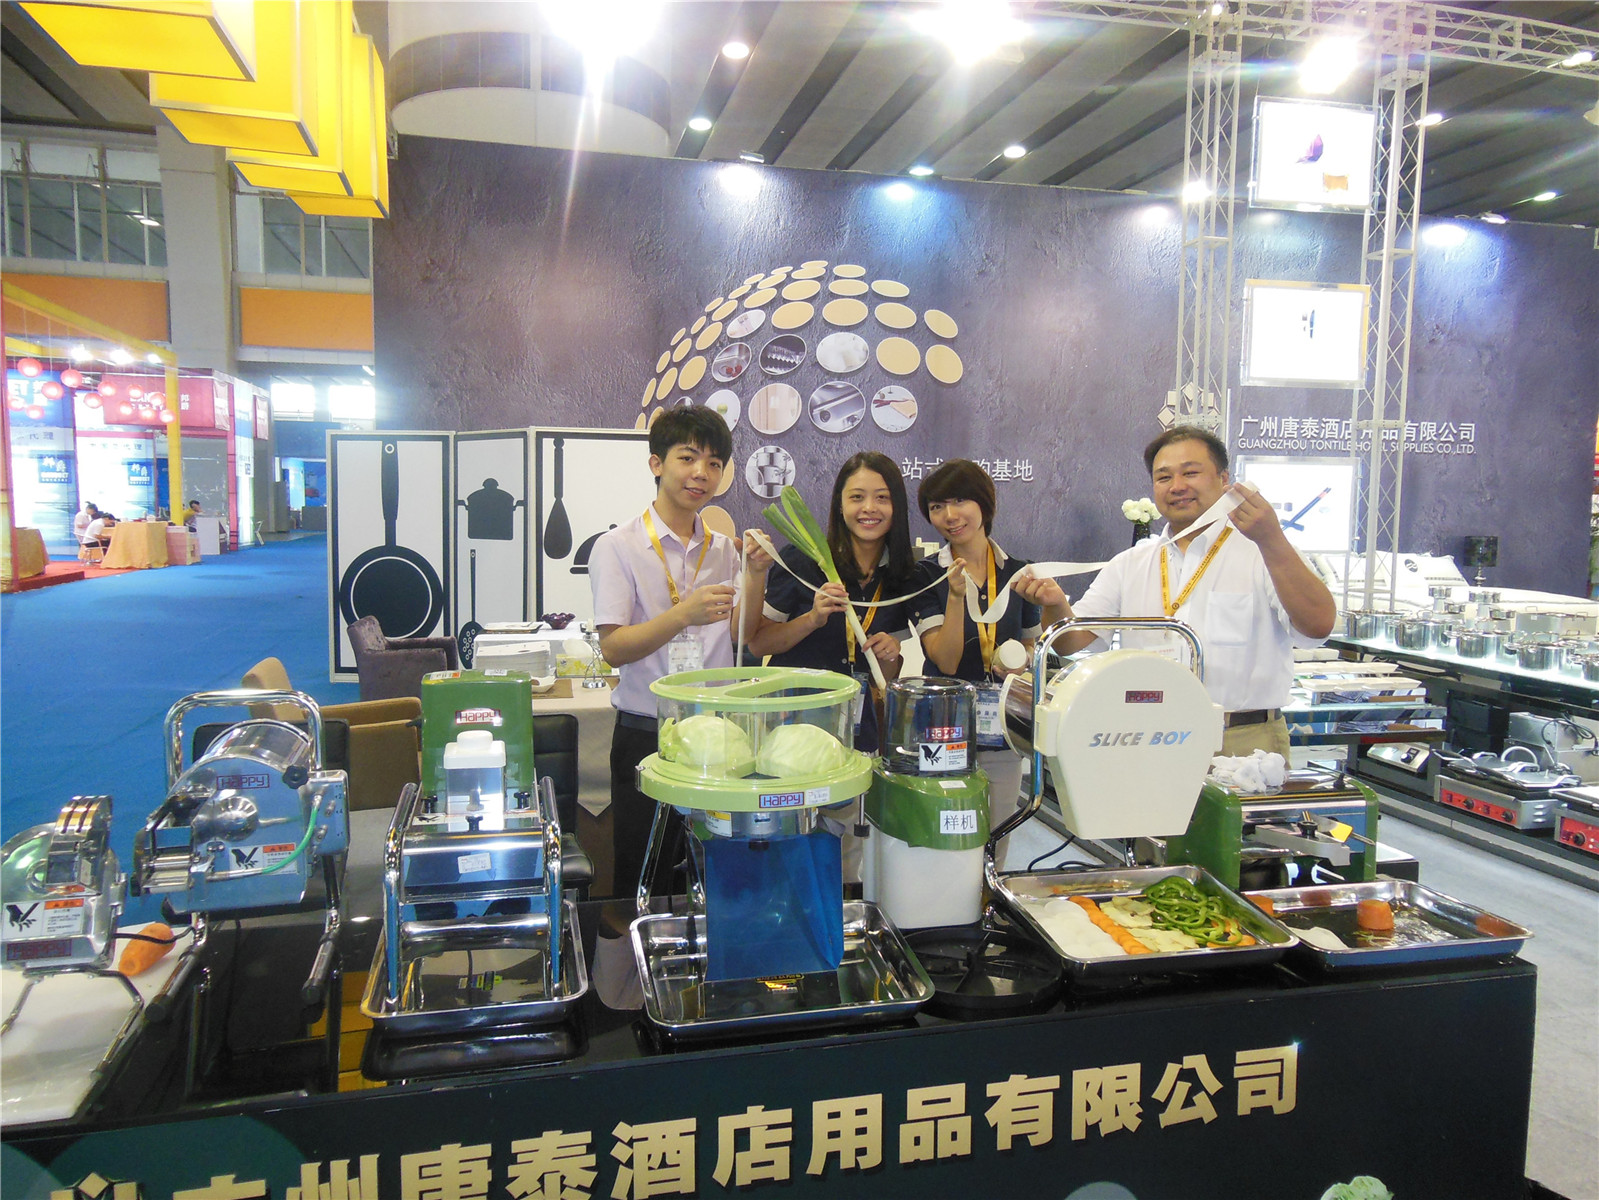 Guangzhou pazhou exhibition-Tontile Team 3